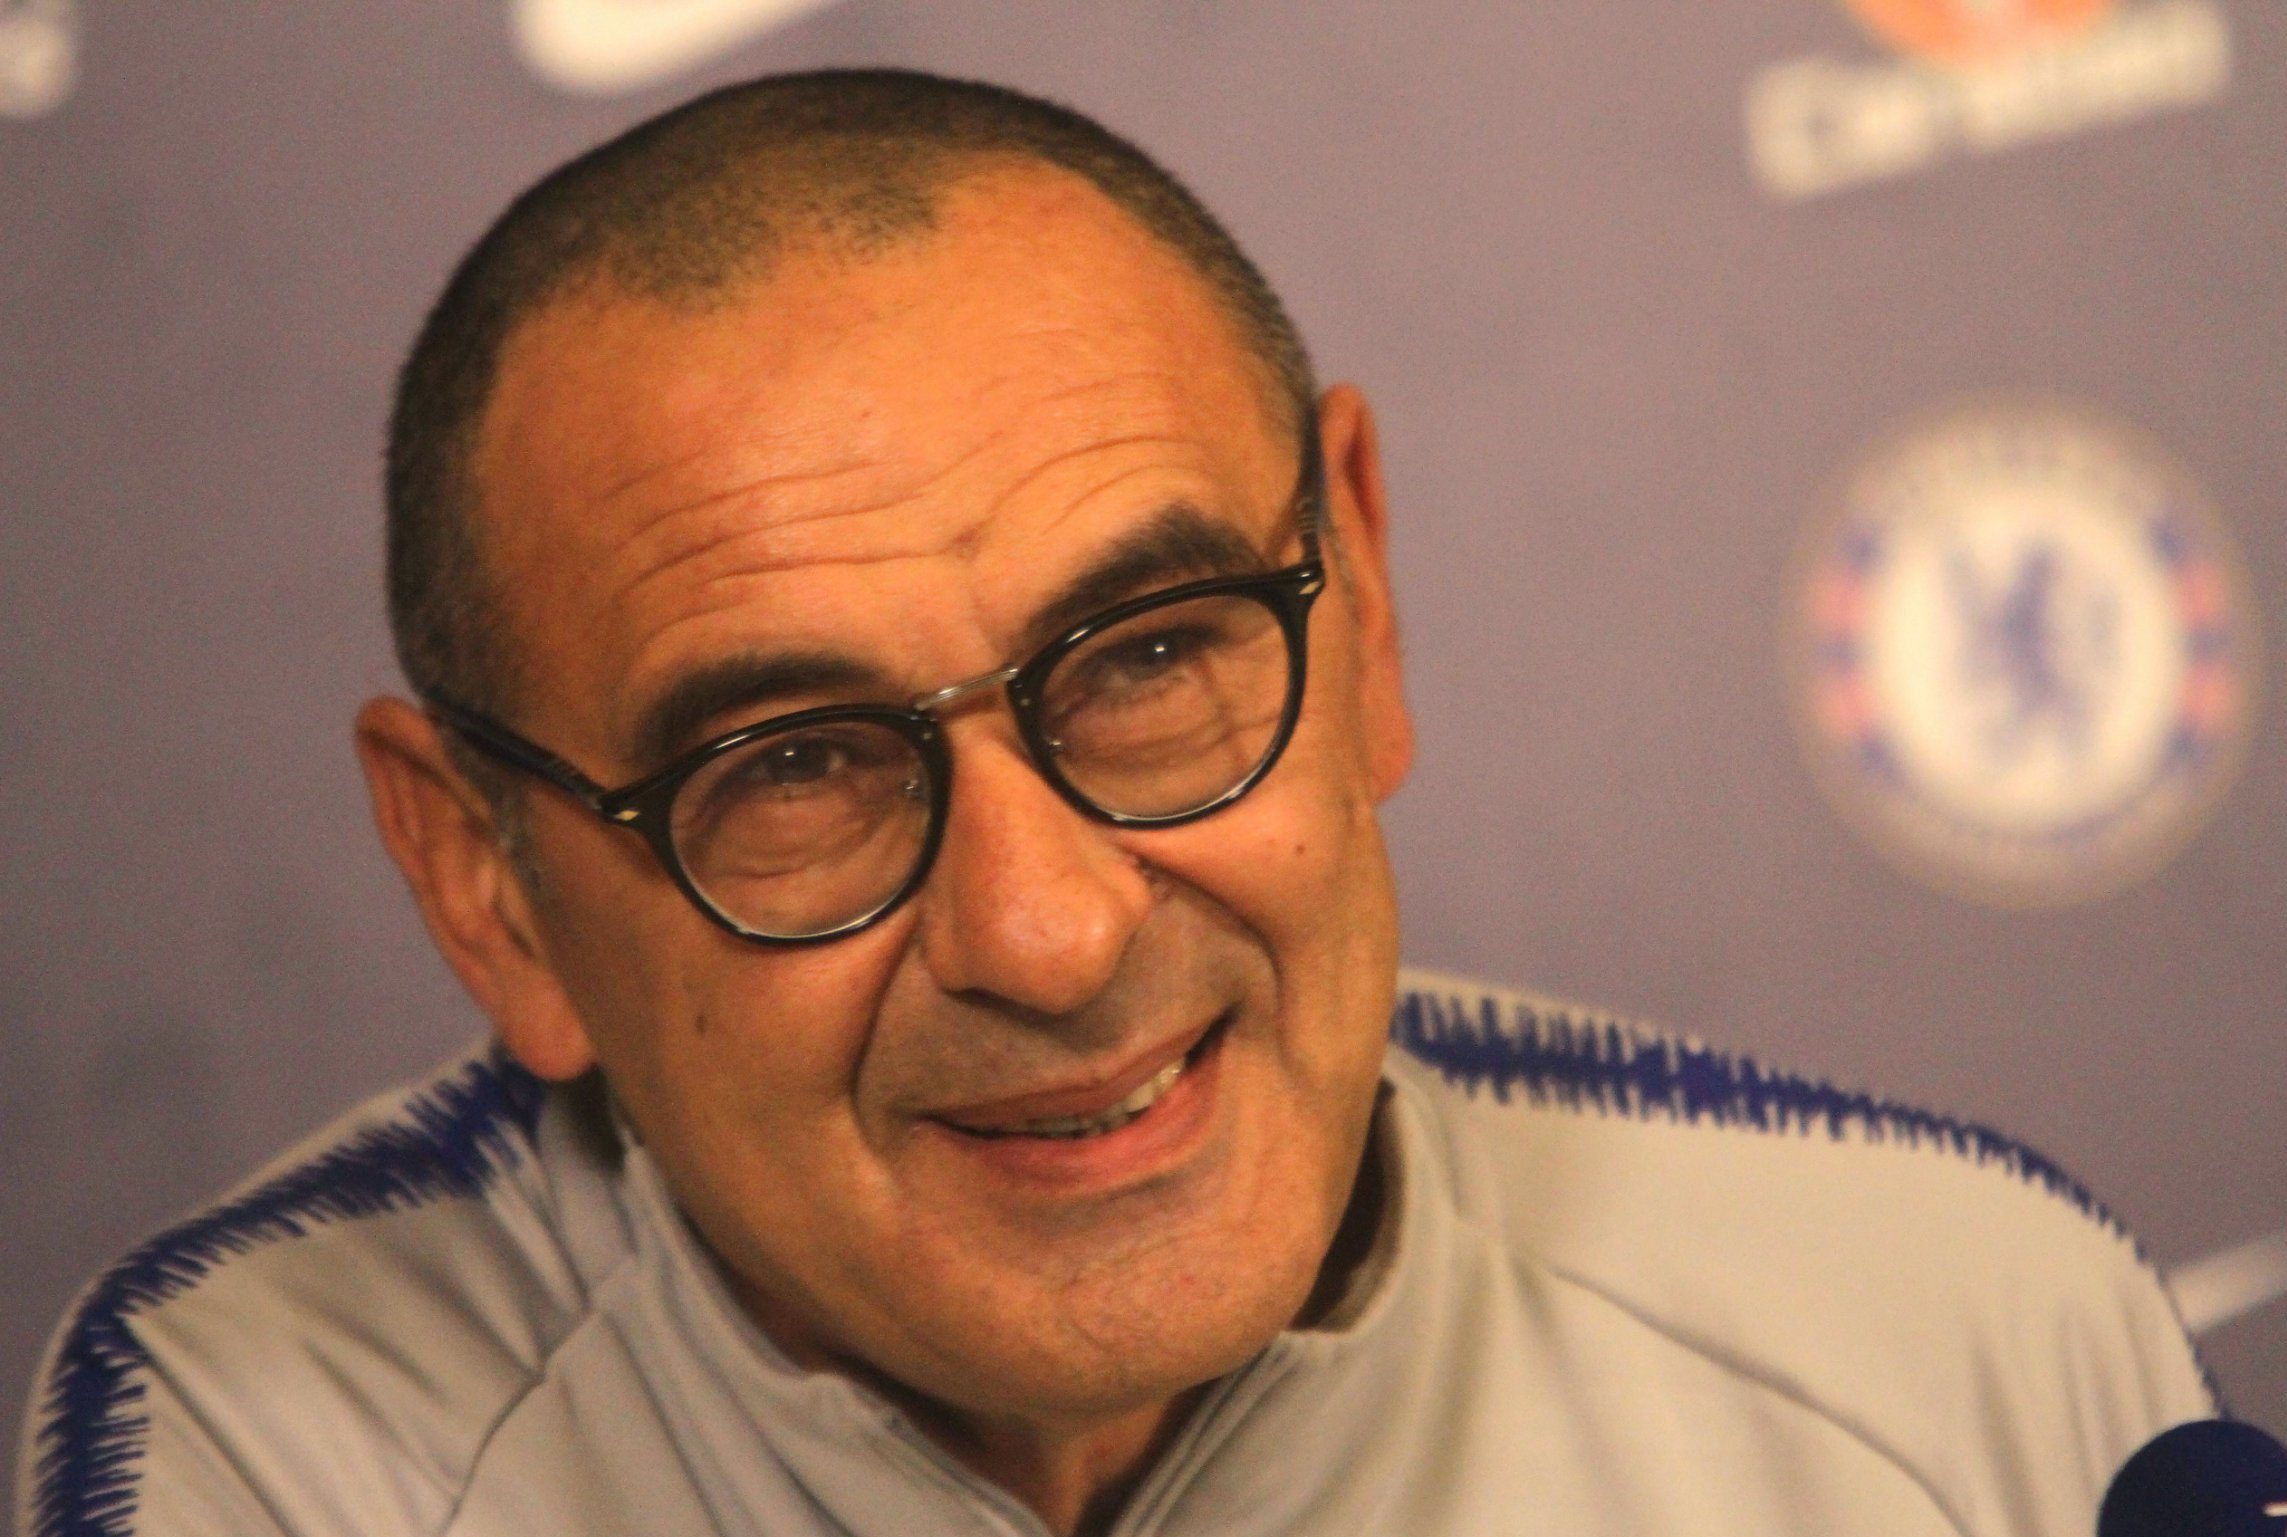 Mandatory Credit: Photo by Tony Larkin/REX (9990899d) Maurizio Sarri Chelsea Football Club press conference, Cobham, Surrey, UK - 23 Nov 2018 Maurizio Sarri holds a press conference ahead of tomorrow's game against Spurs.